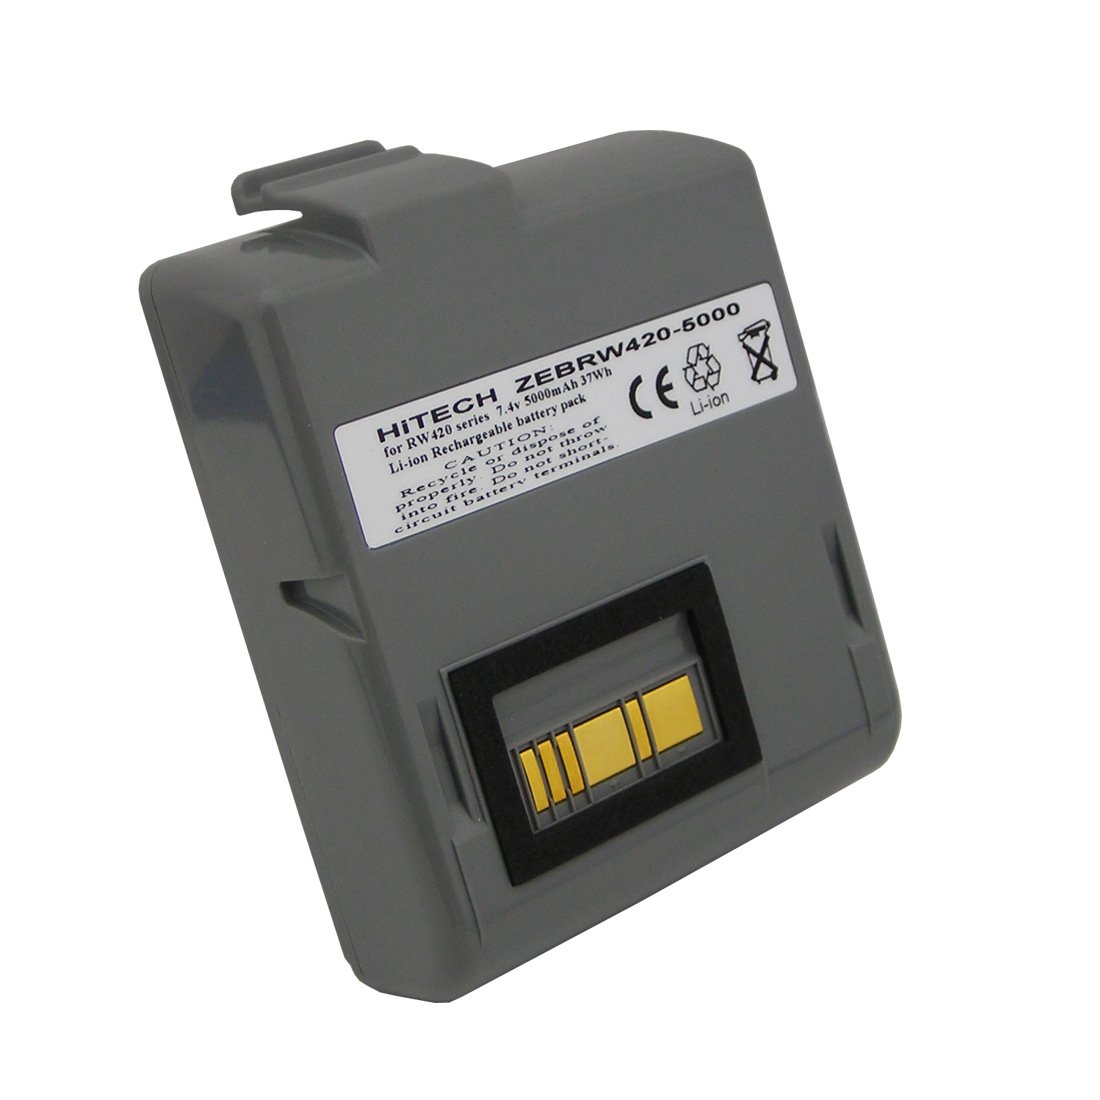 Battery CT17102-2, AK17463-005(Cells of Made in Japan)for Zebra RW420 Portable Label Printers (Li-Ion, 5000mAh)